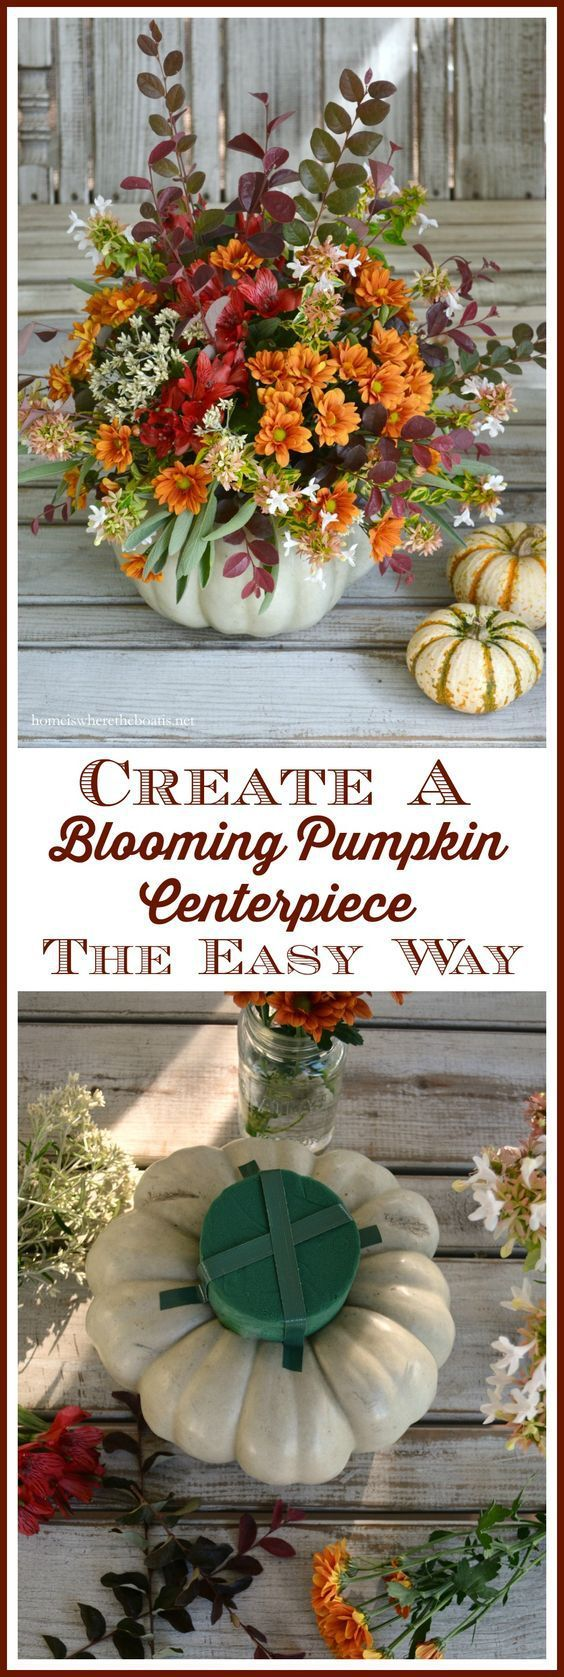 A harvest of fall tablescapes and inspiration pumpkin centerpieces